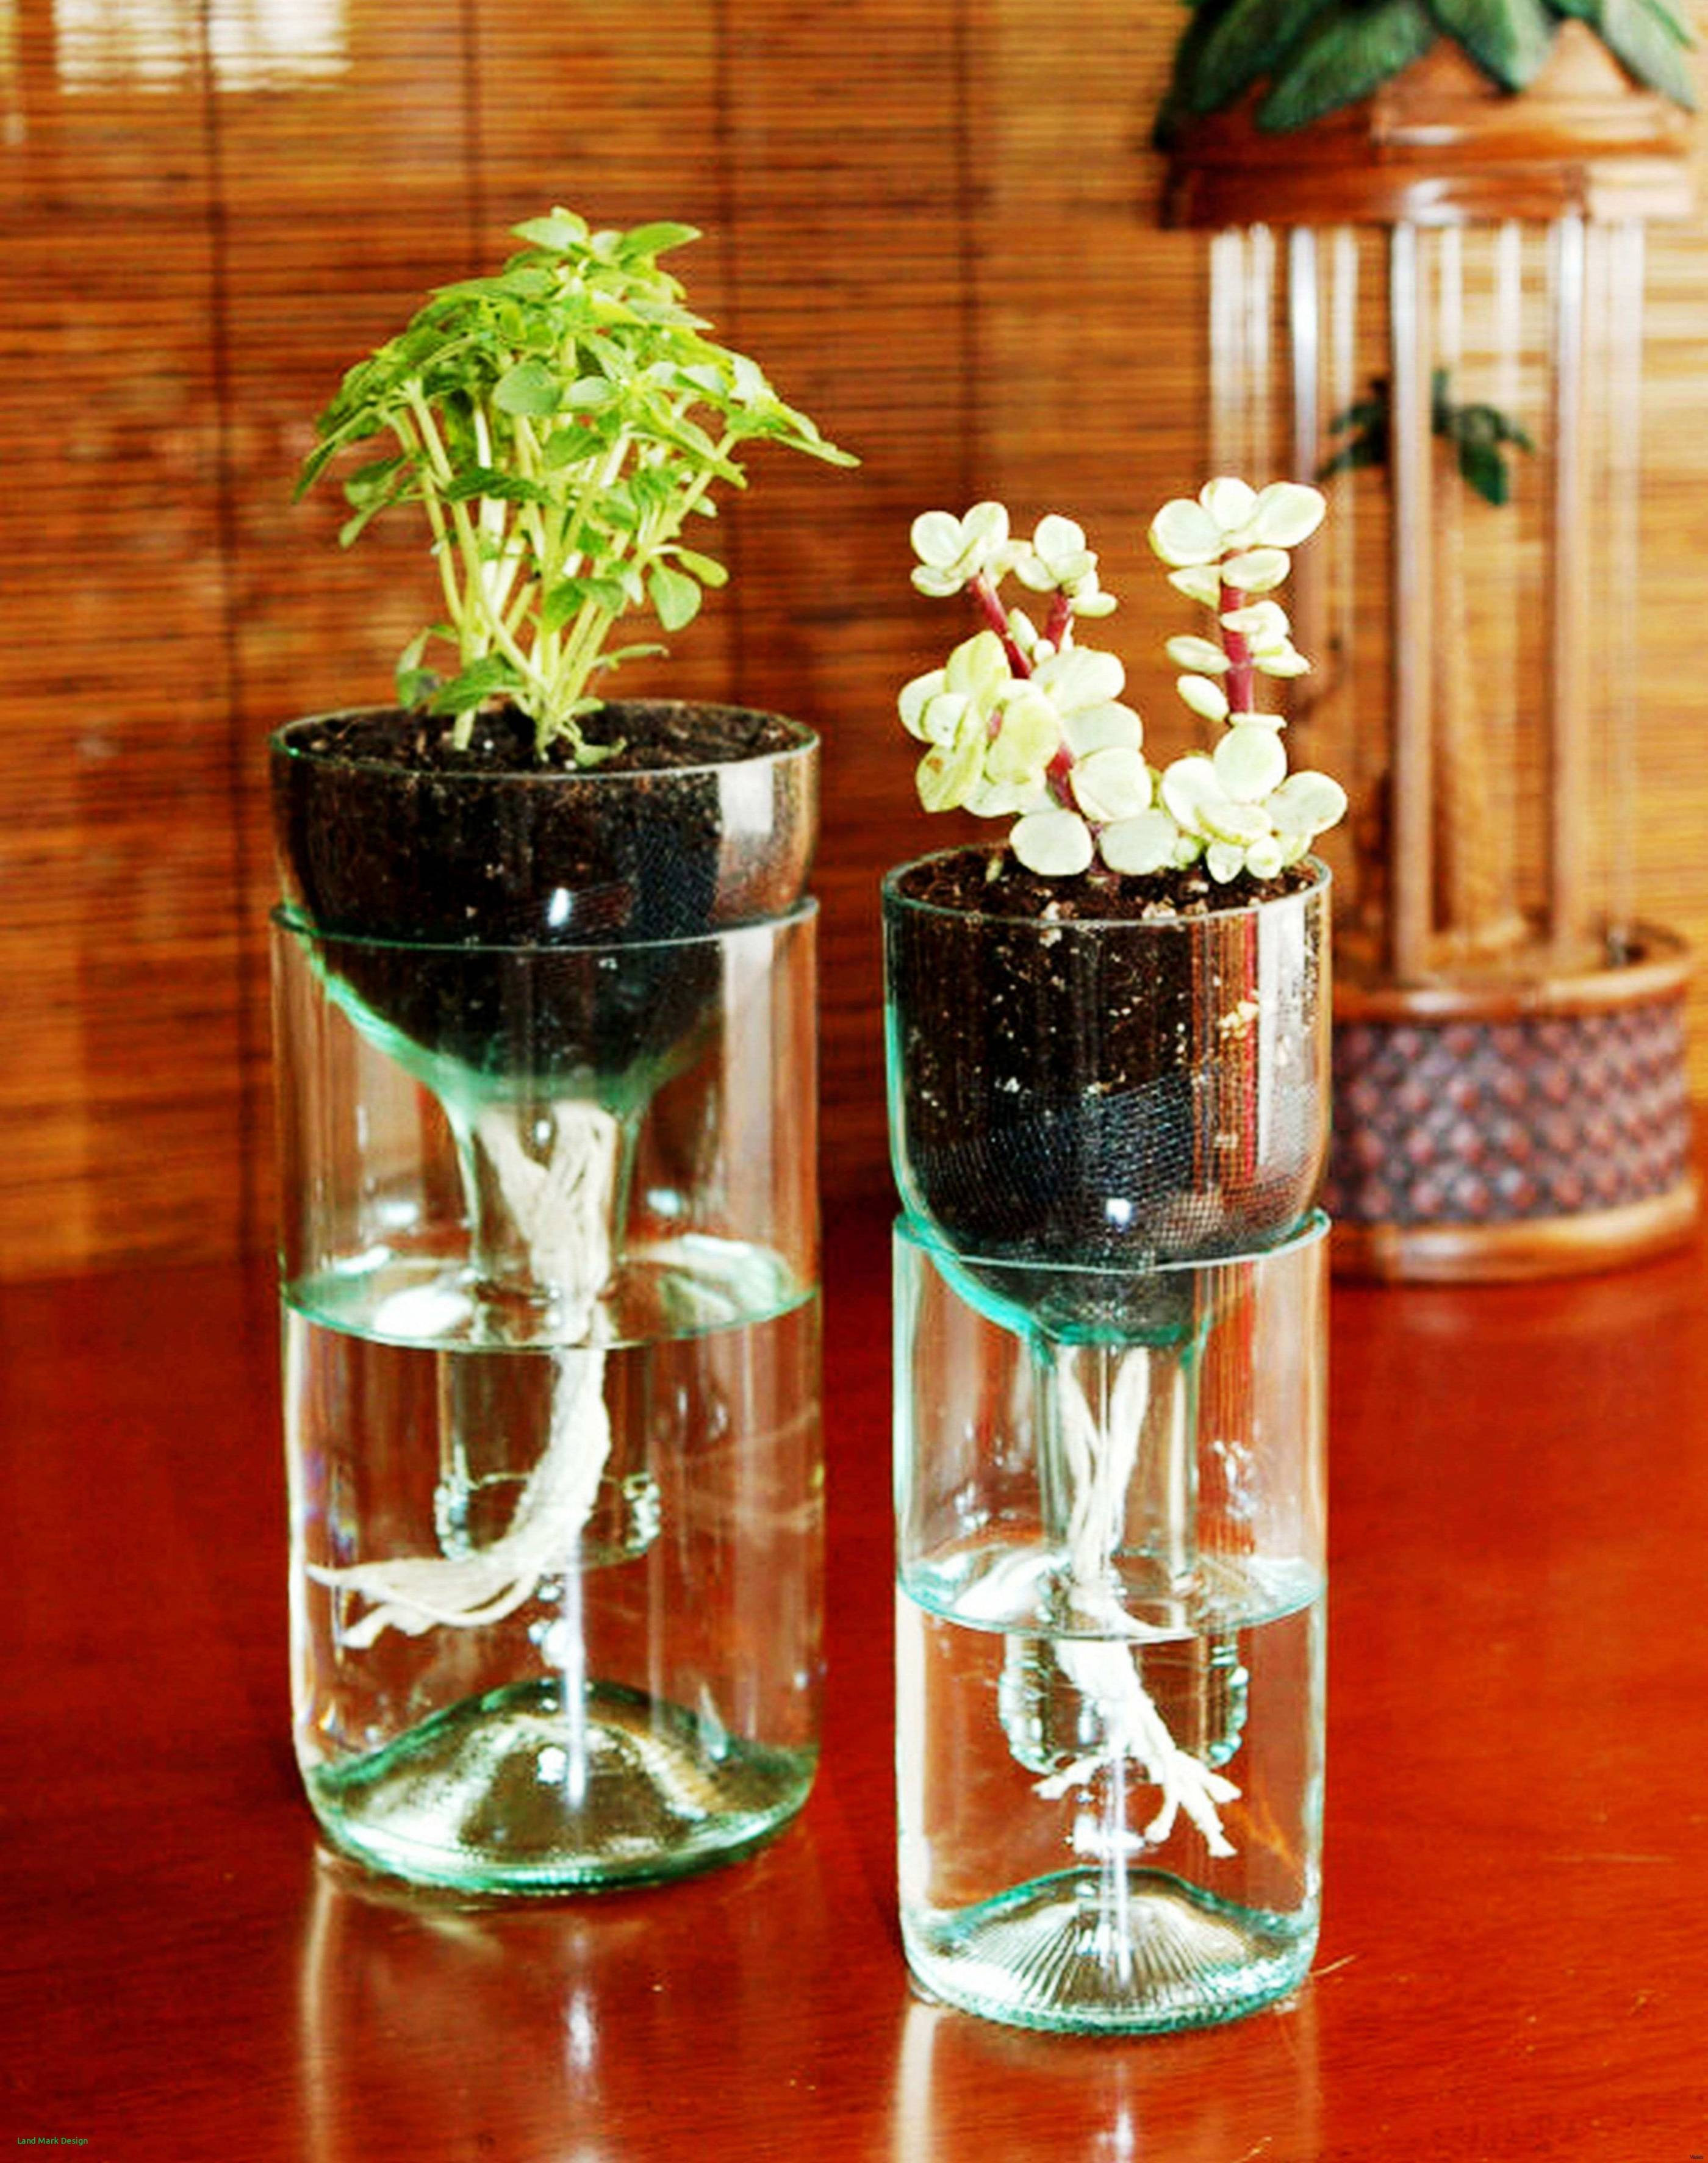 single flower vase of 10 flower pot ideas favorite for elegant room splusna com page throughout stunning flower vase decoration home on diy interior ideas with homeh vases homei 0d